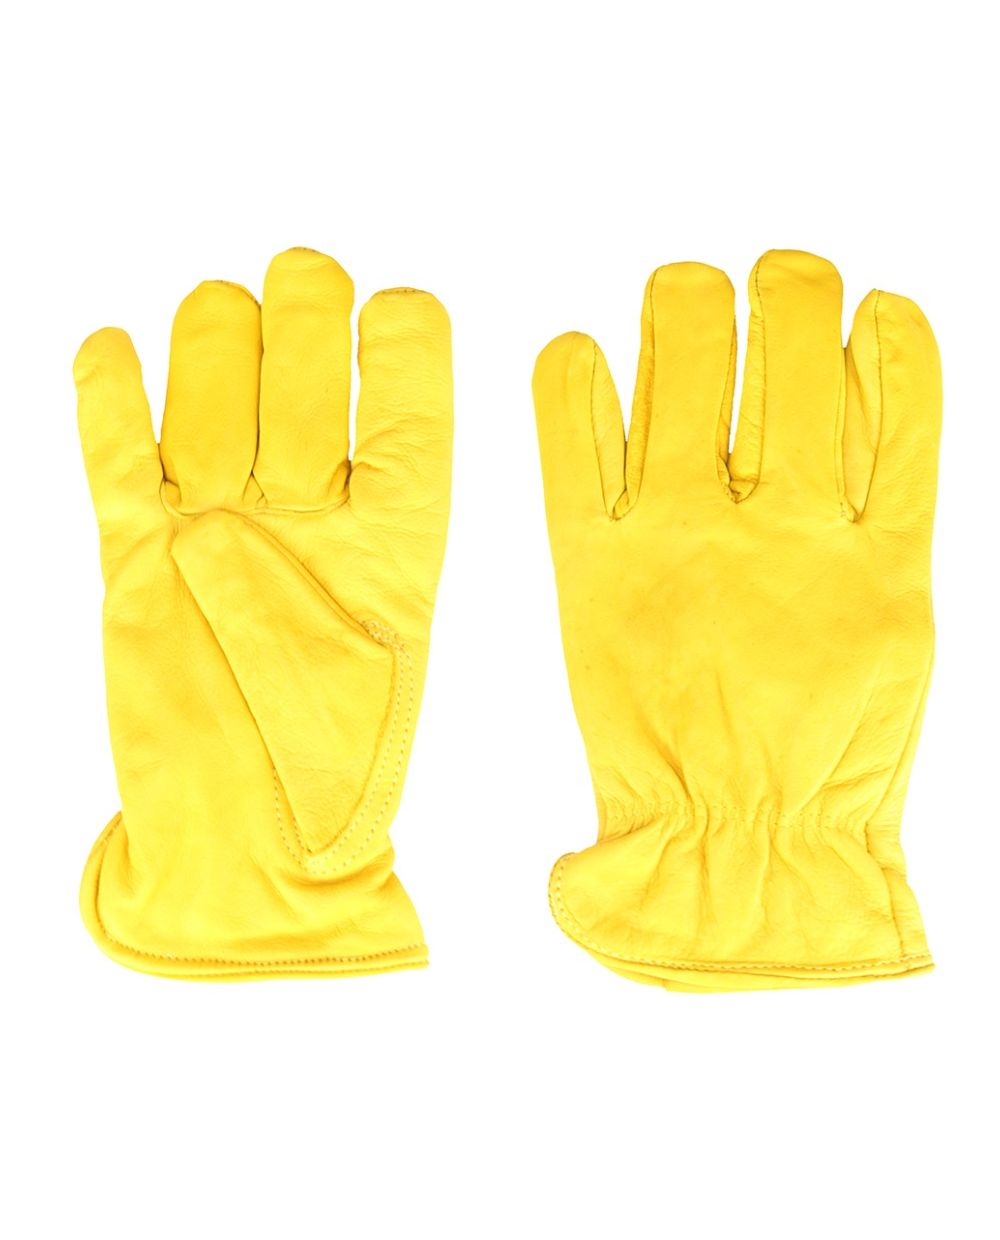 G14 Superior Soft Grain Unlined Drivers Gloves